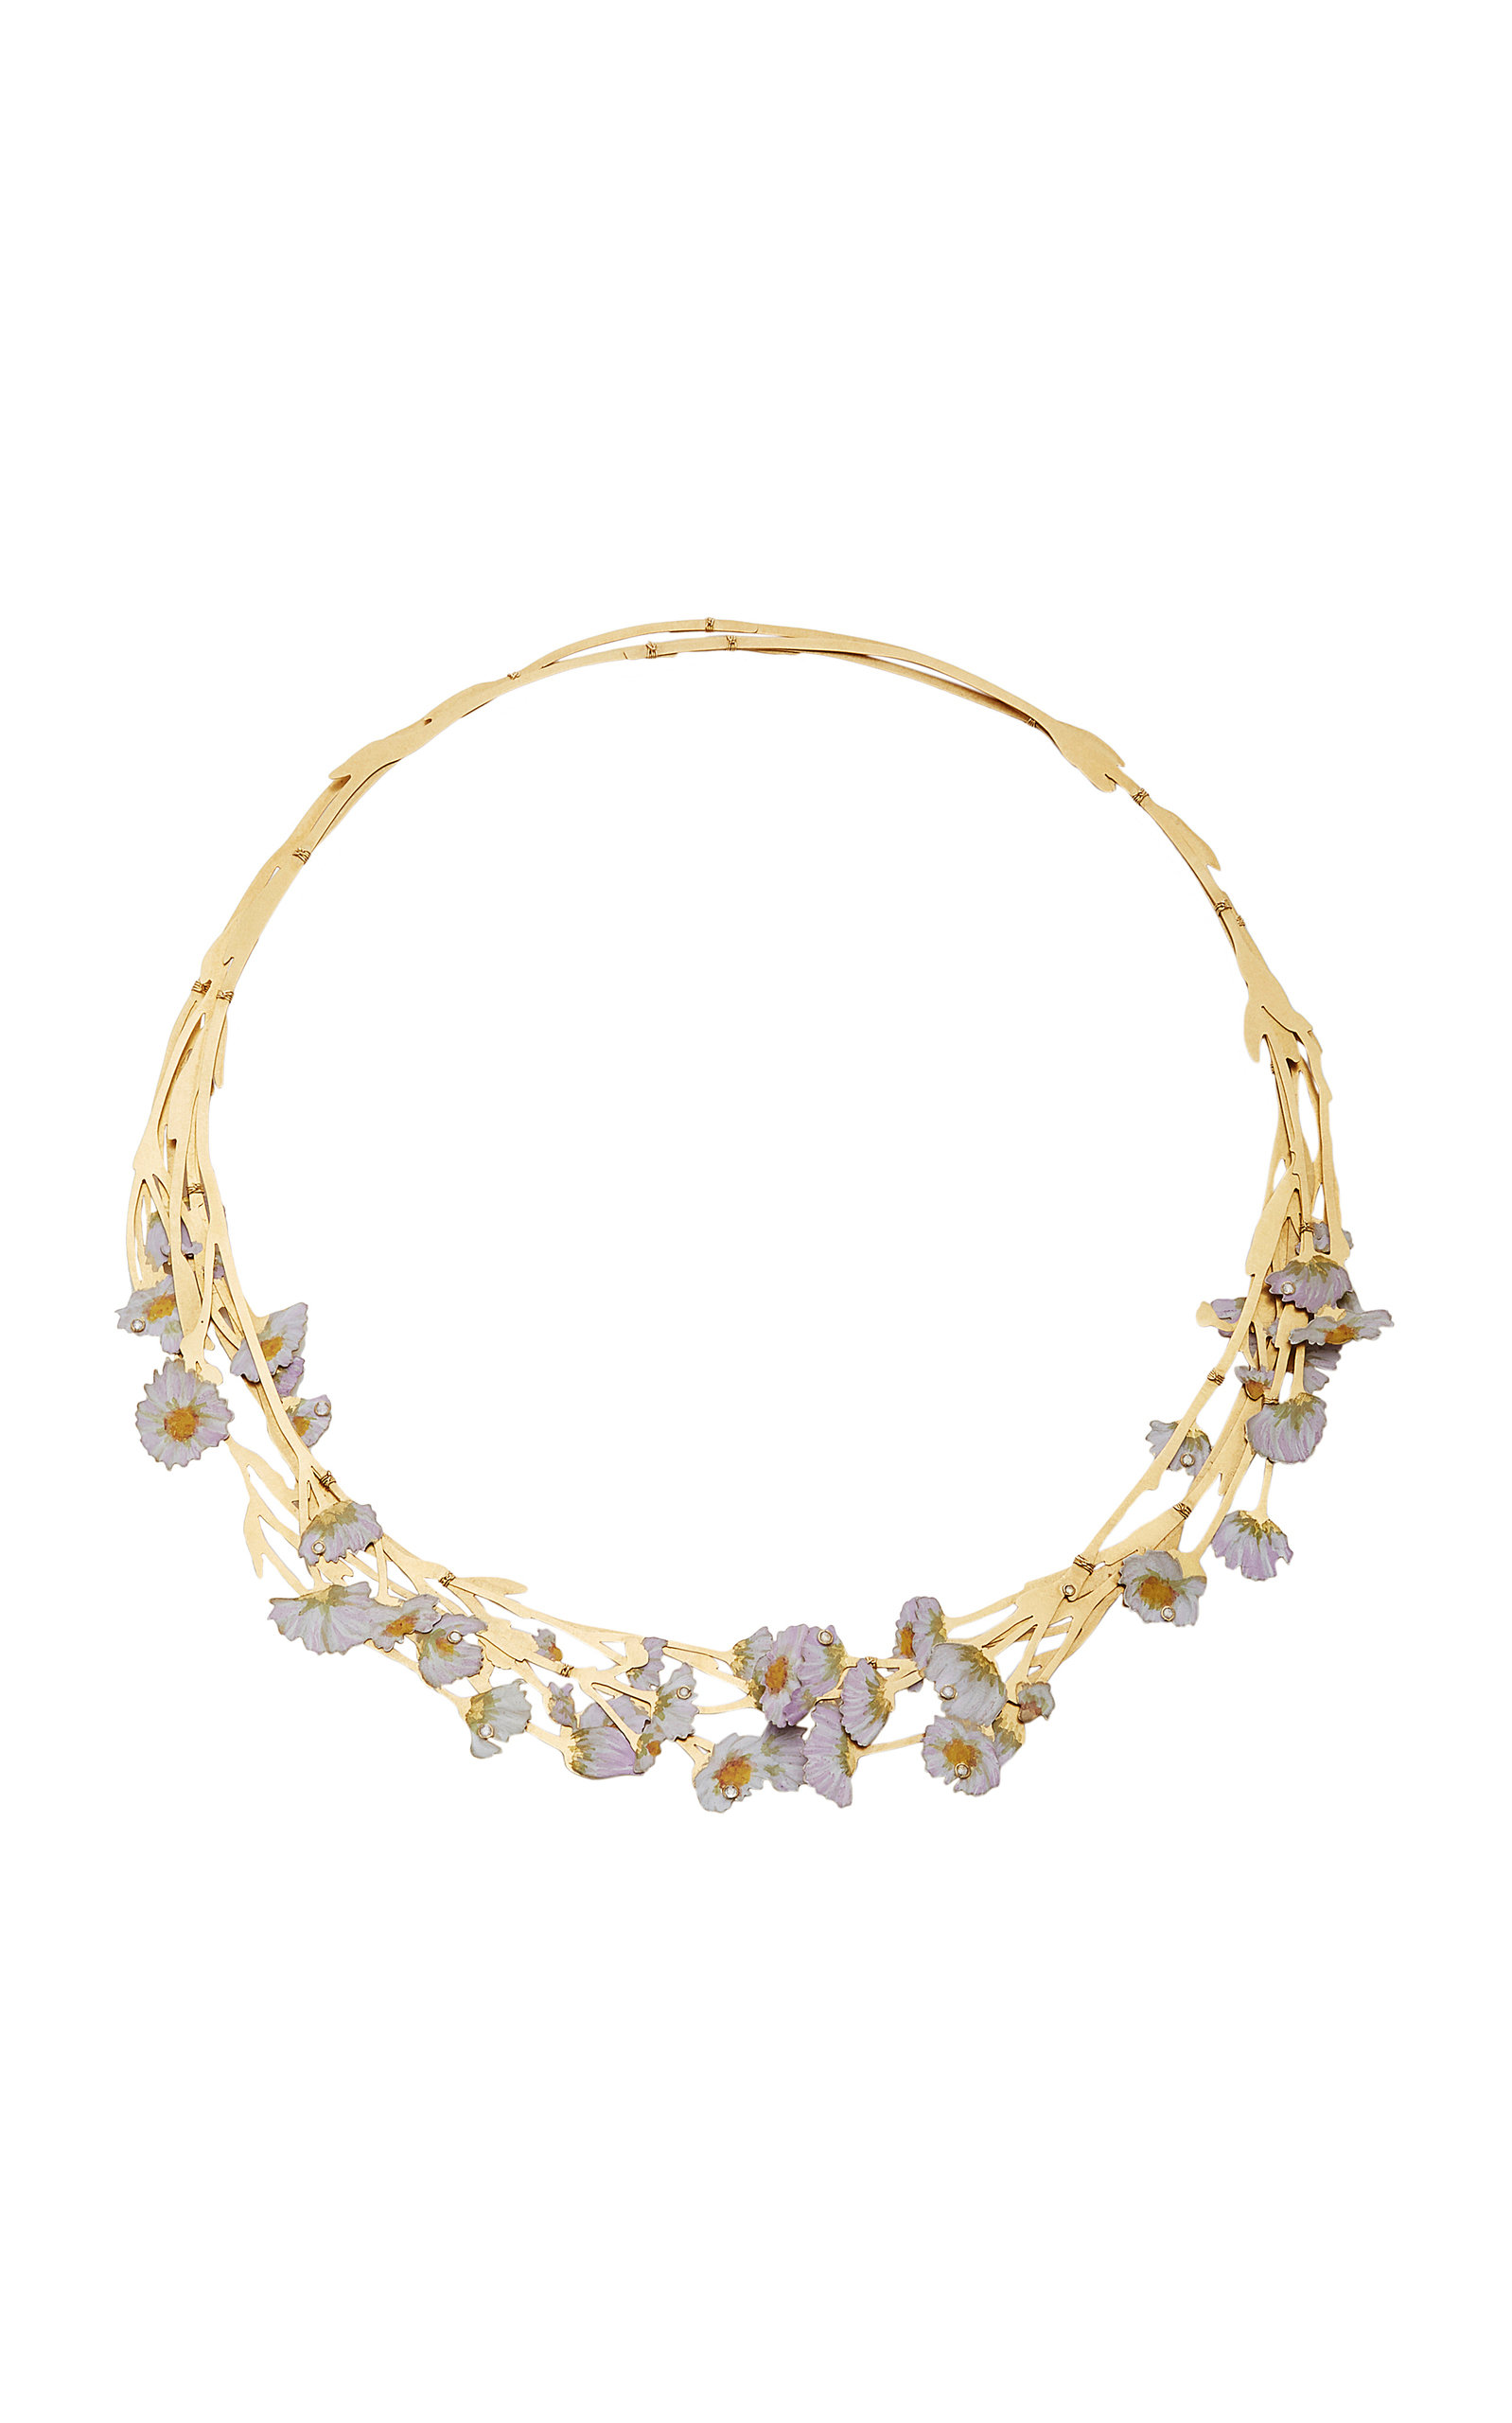 CHRISTOPHER THOMPSON ROYDS ONE-OF-A-KIND WILD ASTER NECKLACE